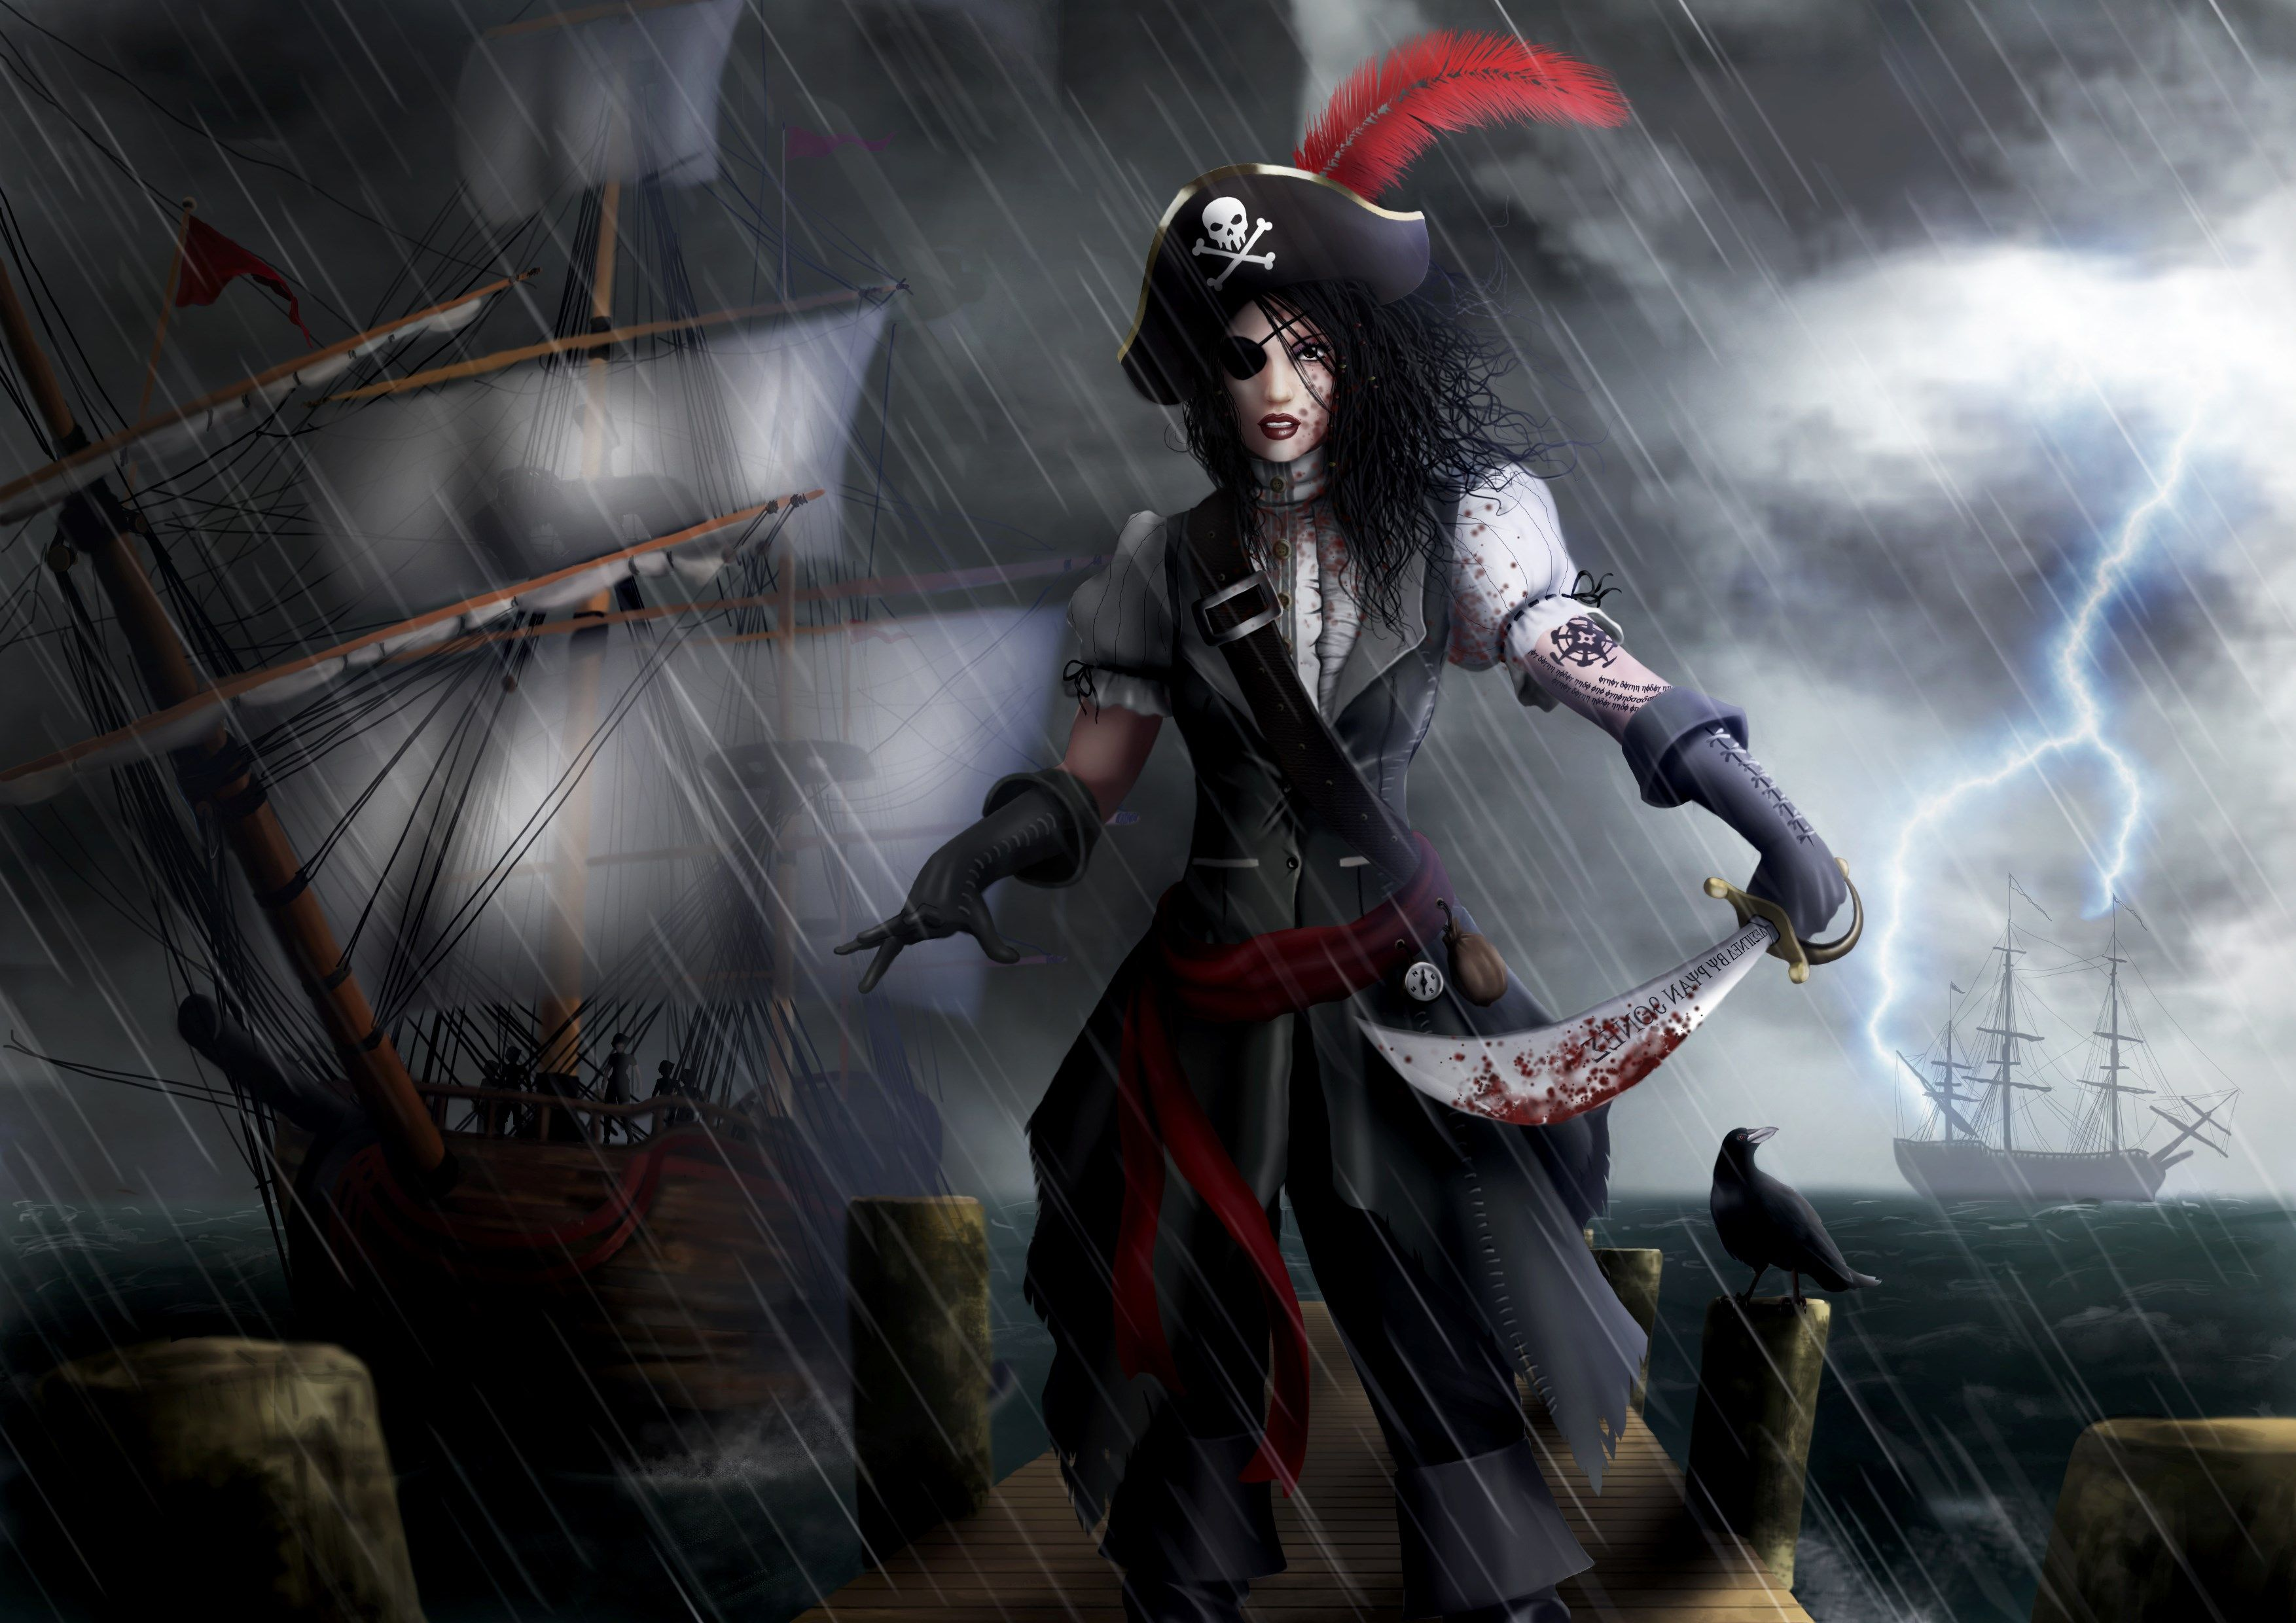 2017 03 03 free screensaver wallpapers for pirate 1681684